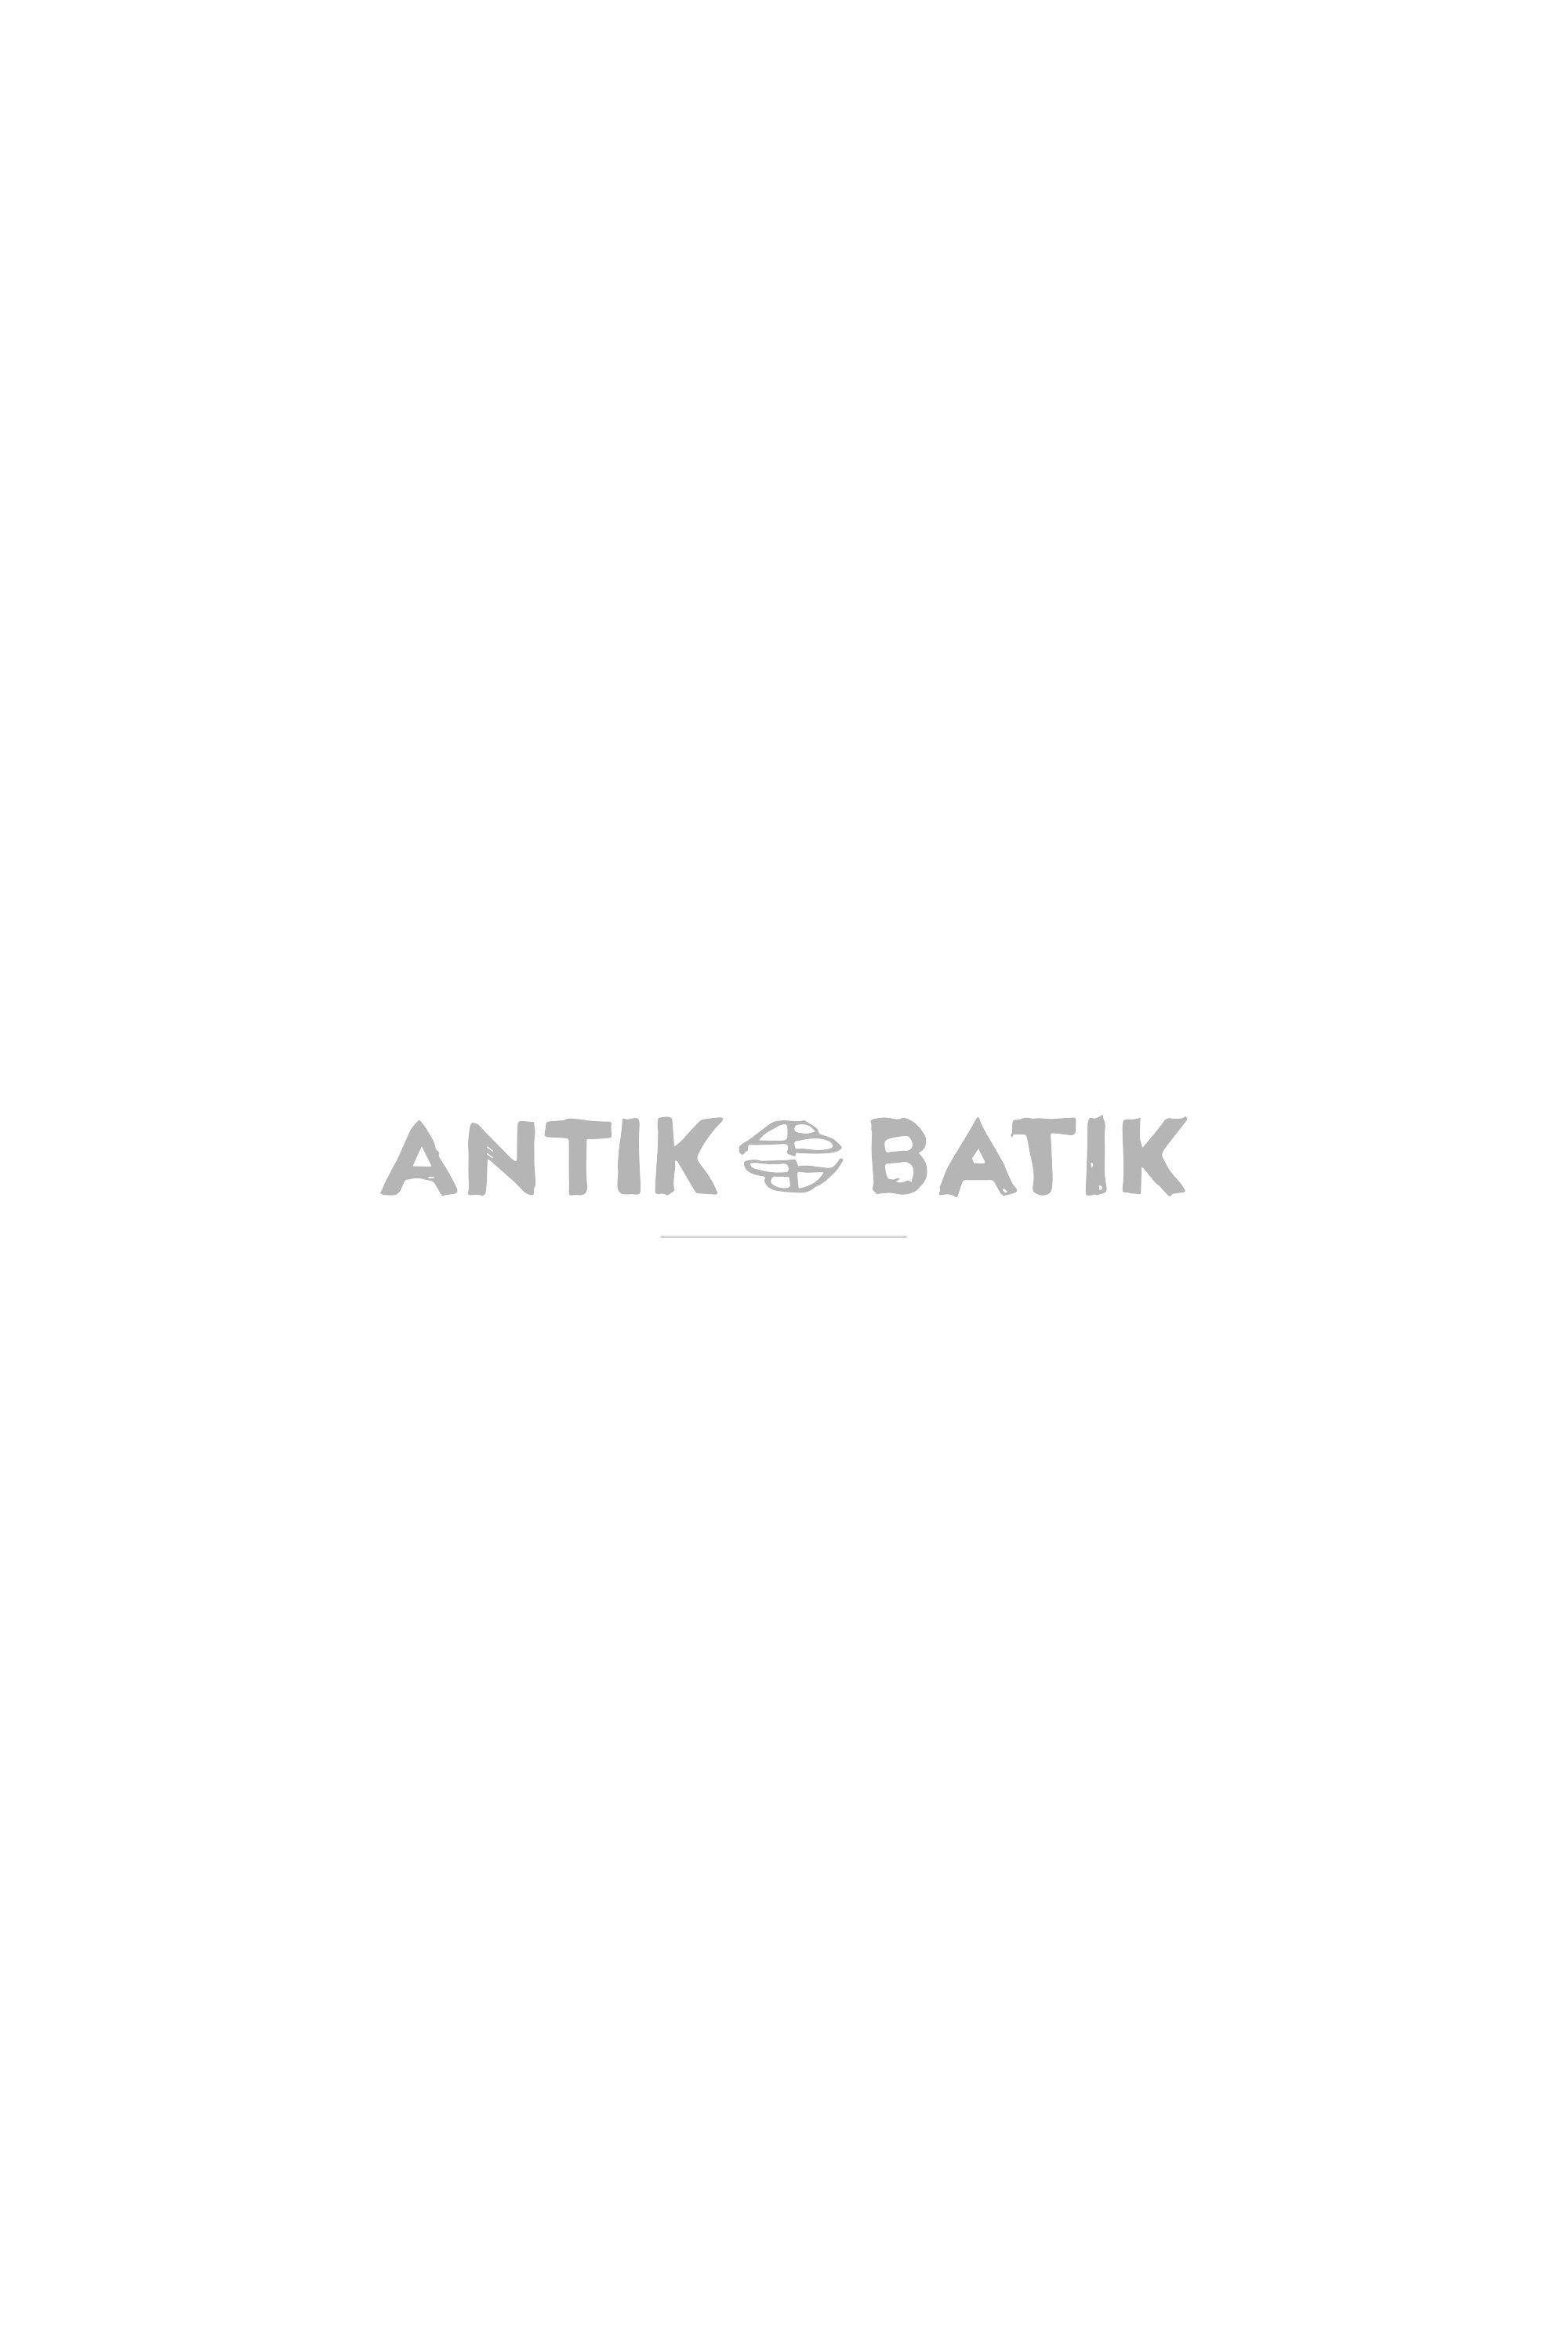 Antikbatik Cream-Coloured Tori Sandal-Style Espadrilles